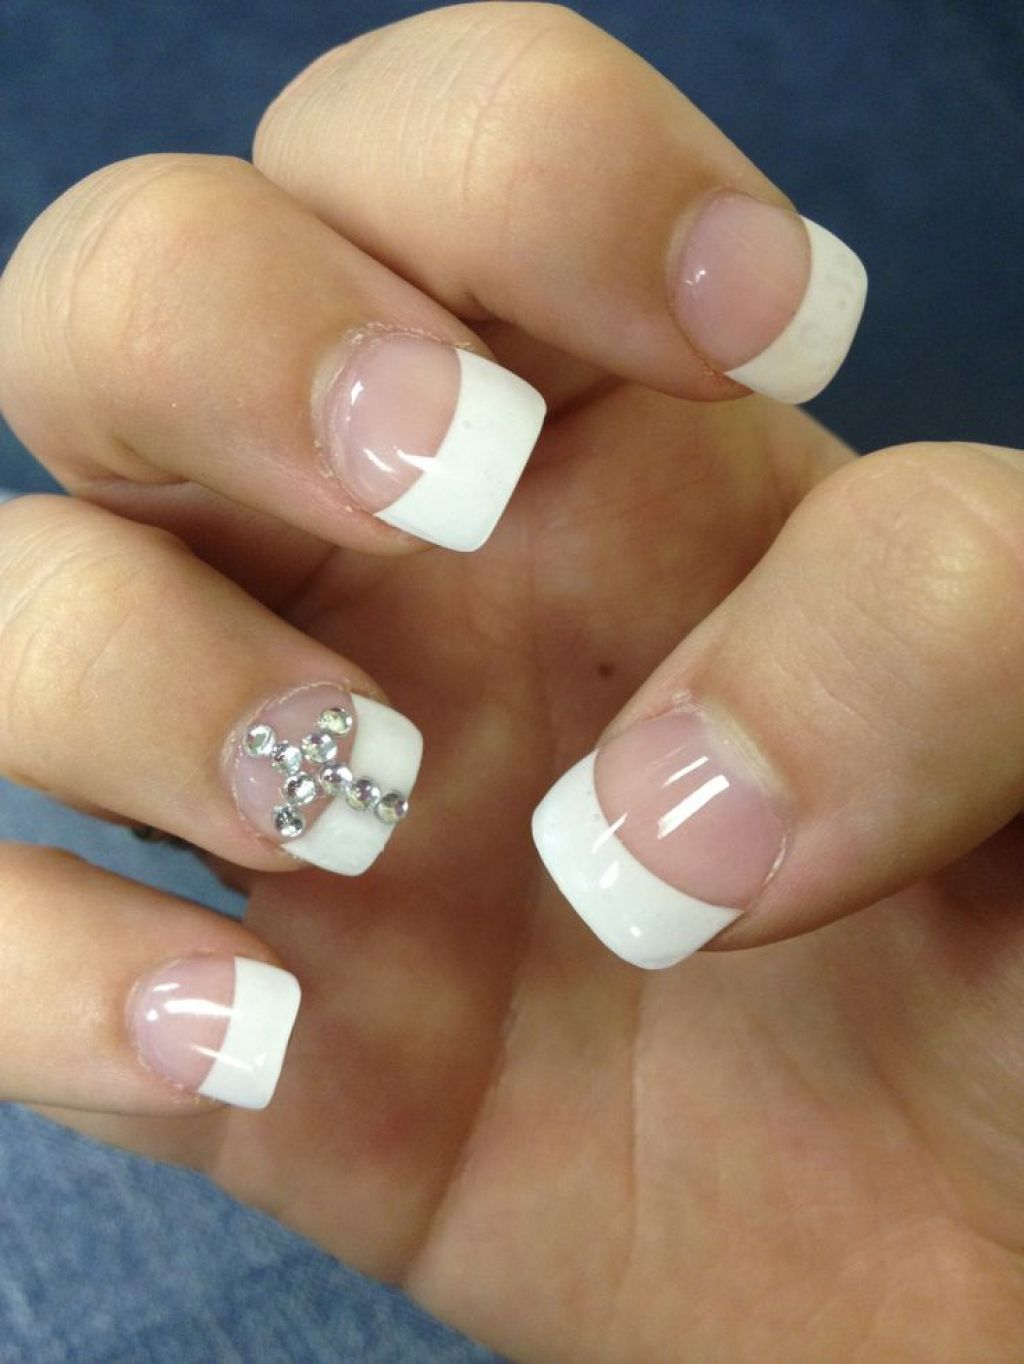 Acrylic Nails With Cross Design - Nail-designs-with-rhinestones-and-crosses-cross-acrylic-nails